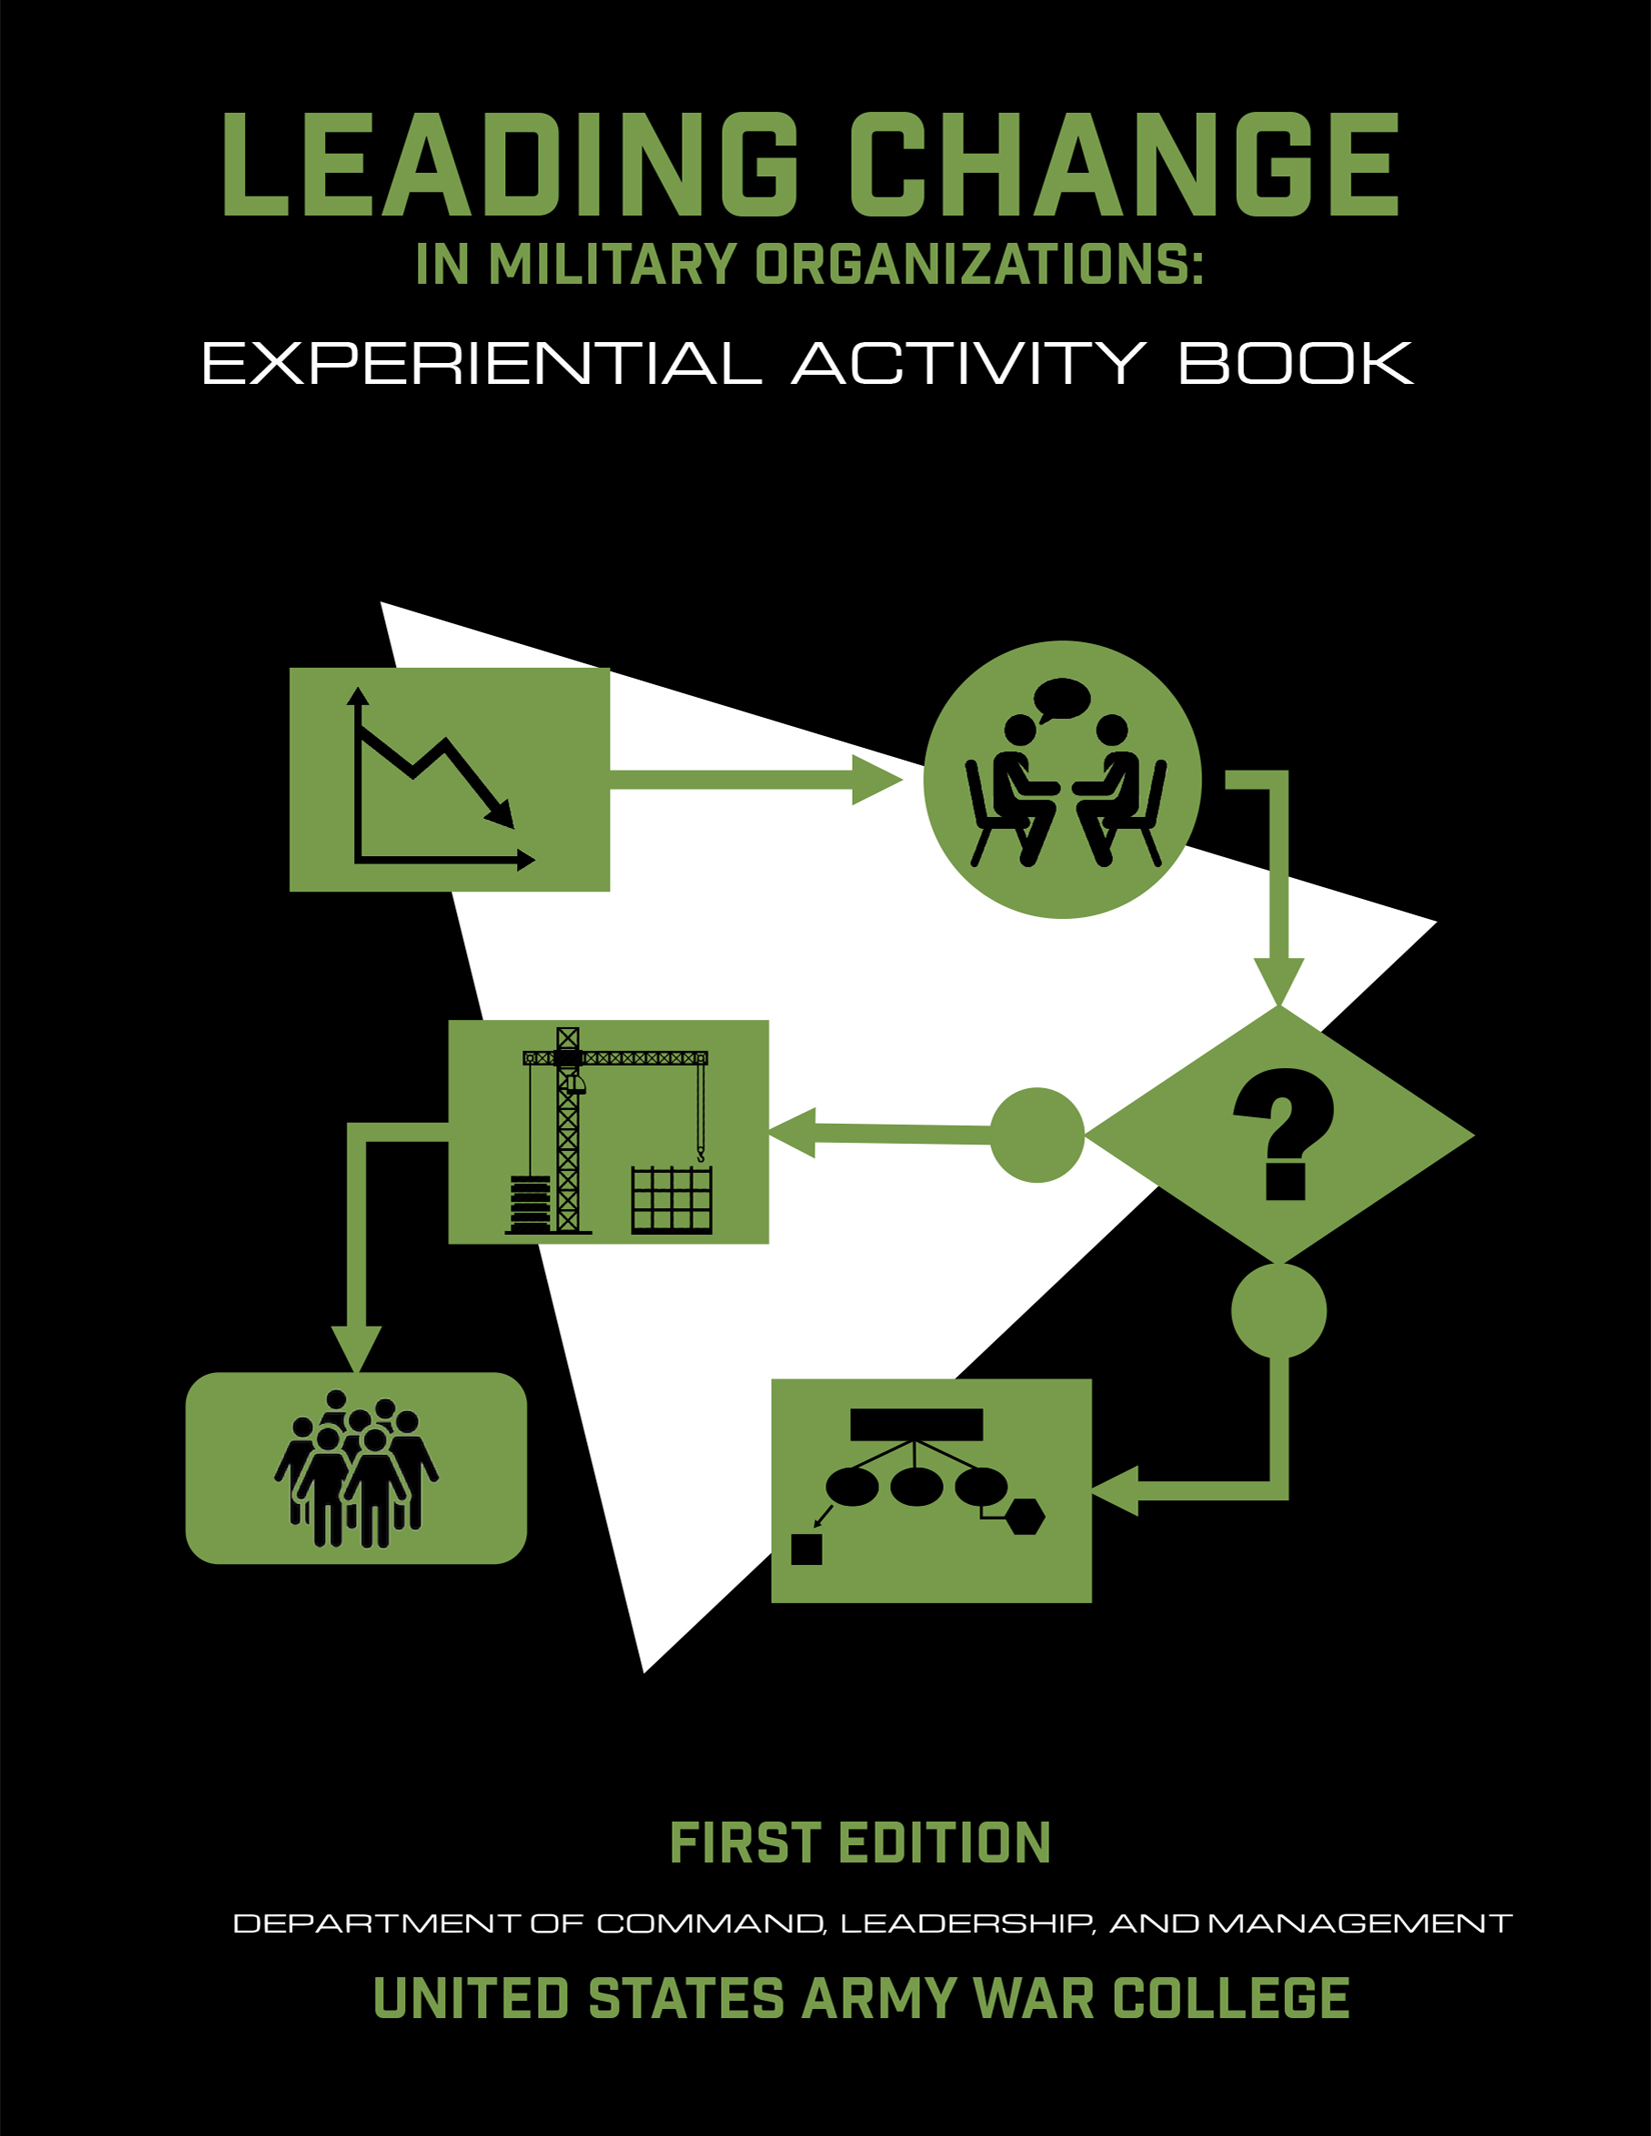 Leading Change in Military Organizations: Experiential Activity Book